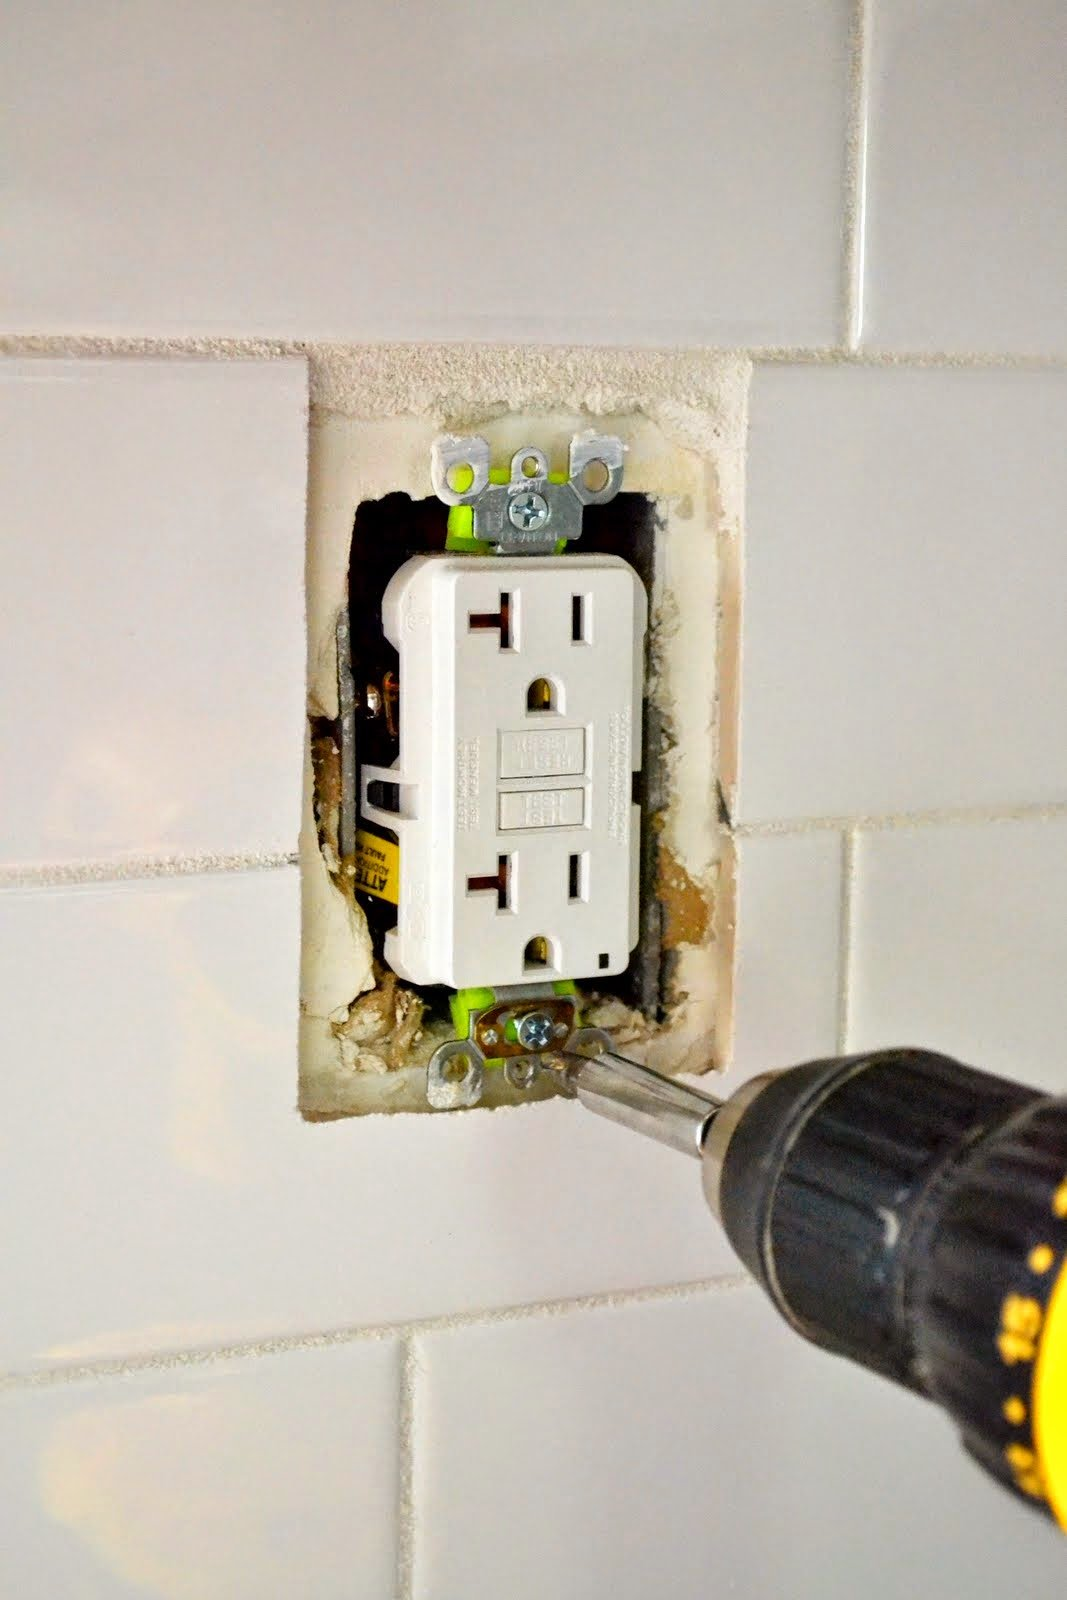 How To Extend An Outlet After Tiling And Fix A Loose Wiring Old Then You Put The Face Plates Back On Each Youre Done